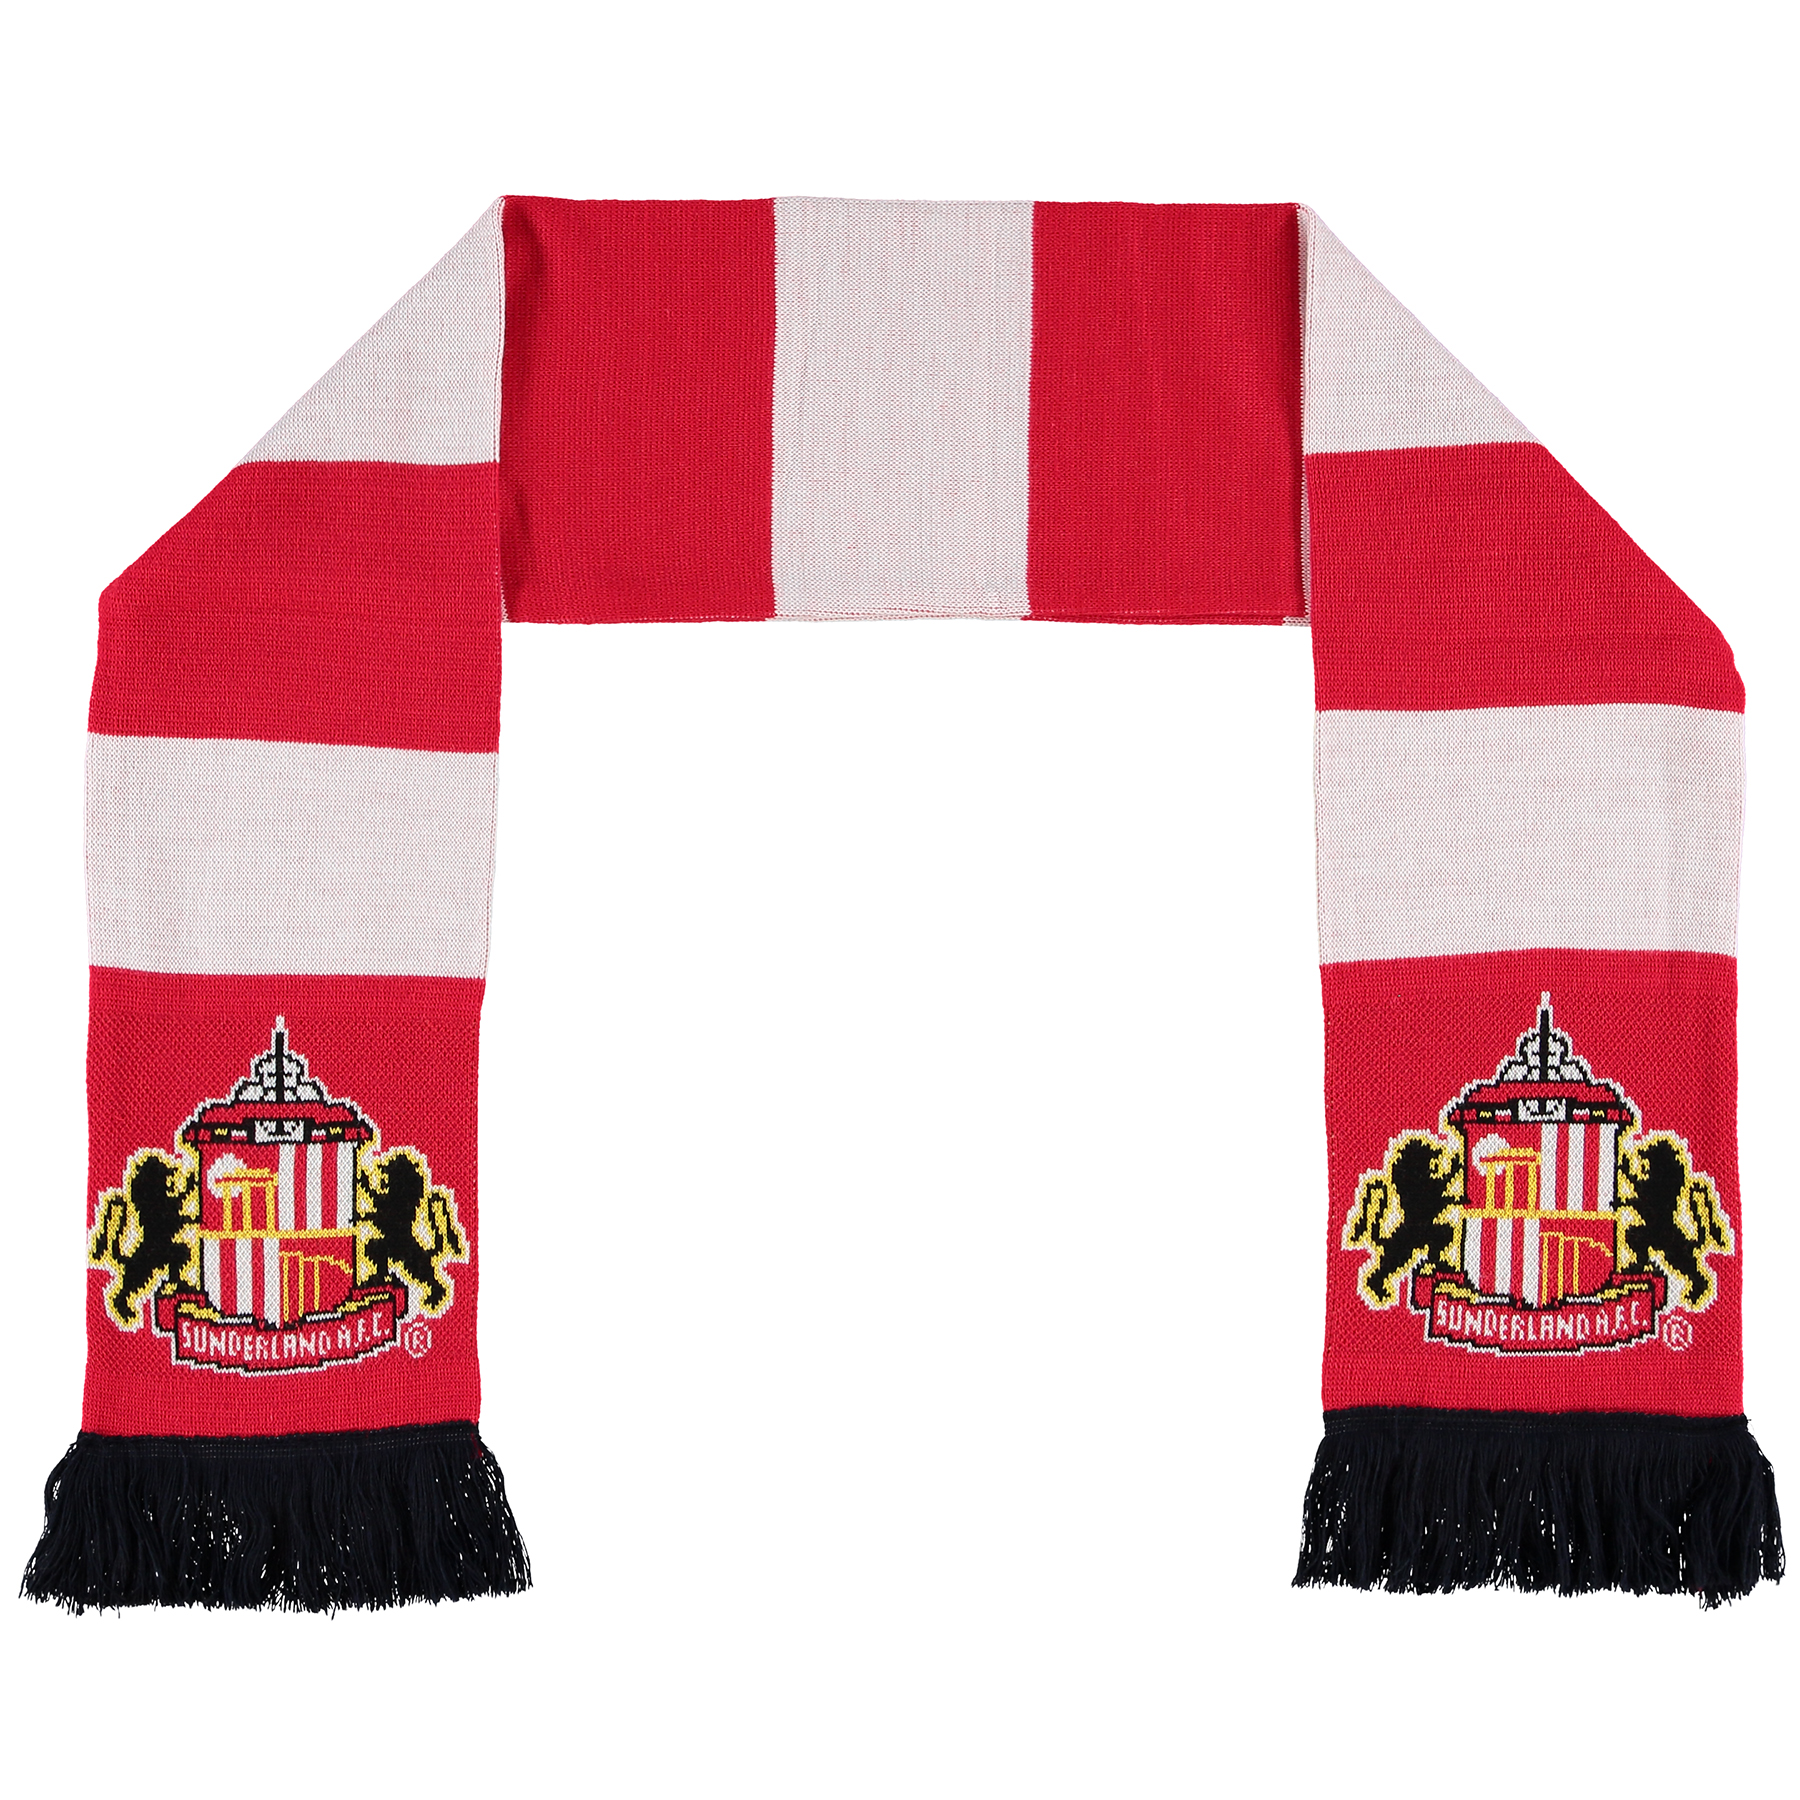 Sunderland Bar Scarf - Red